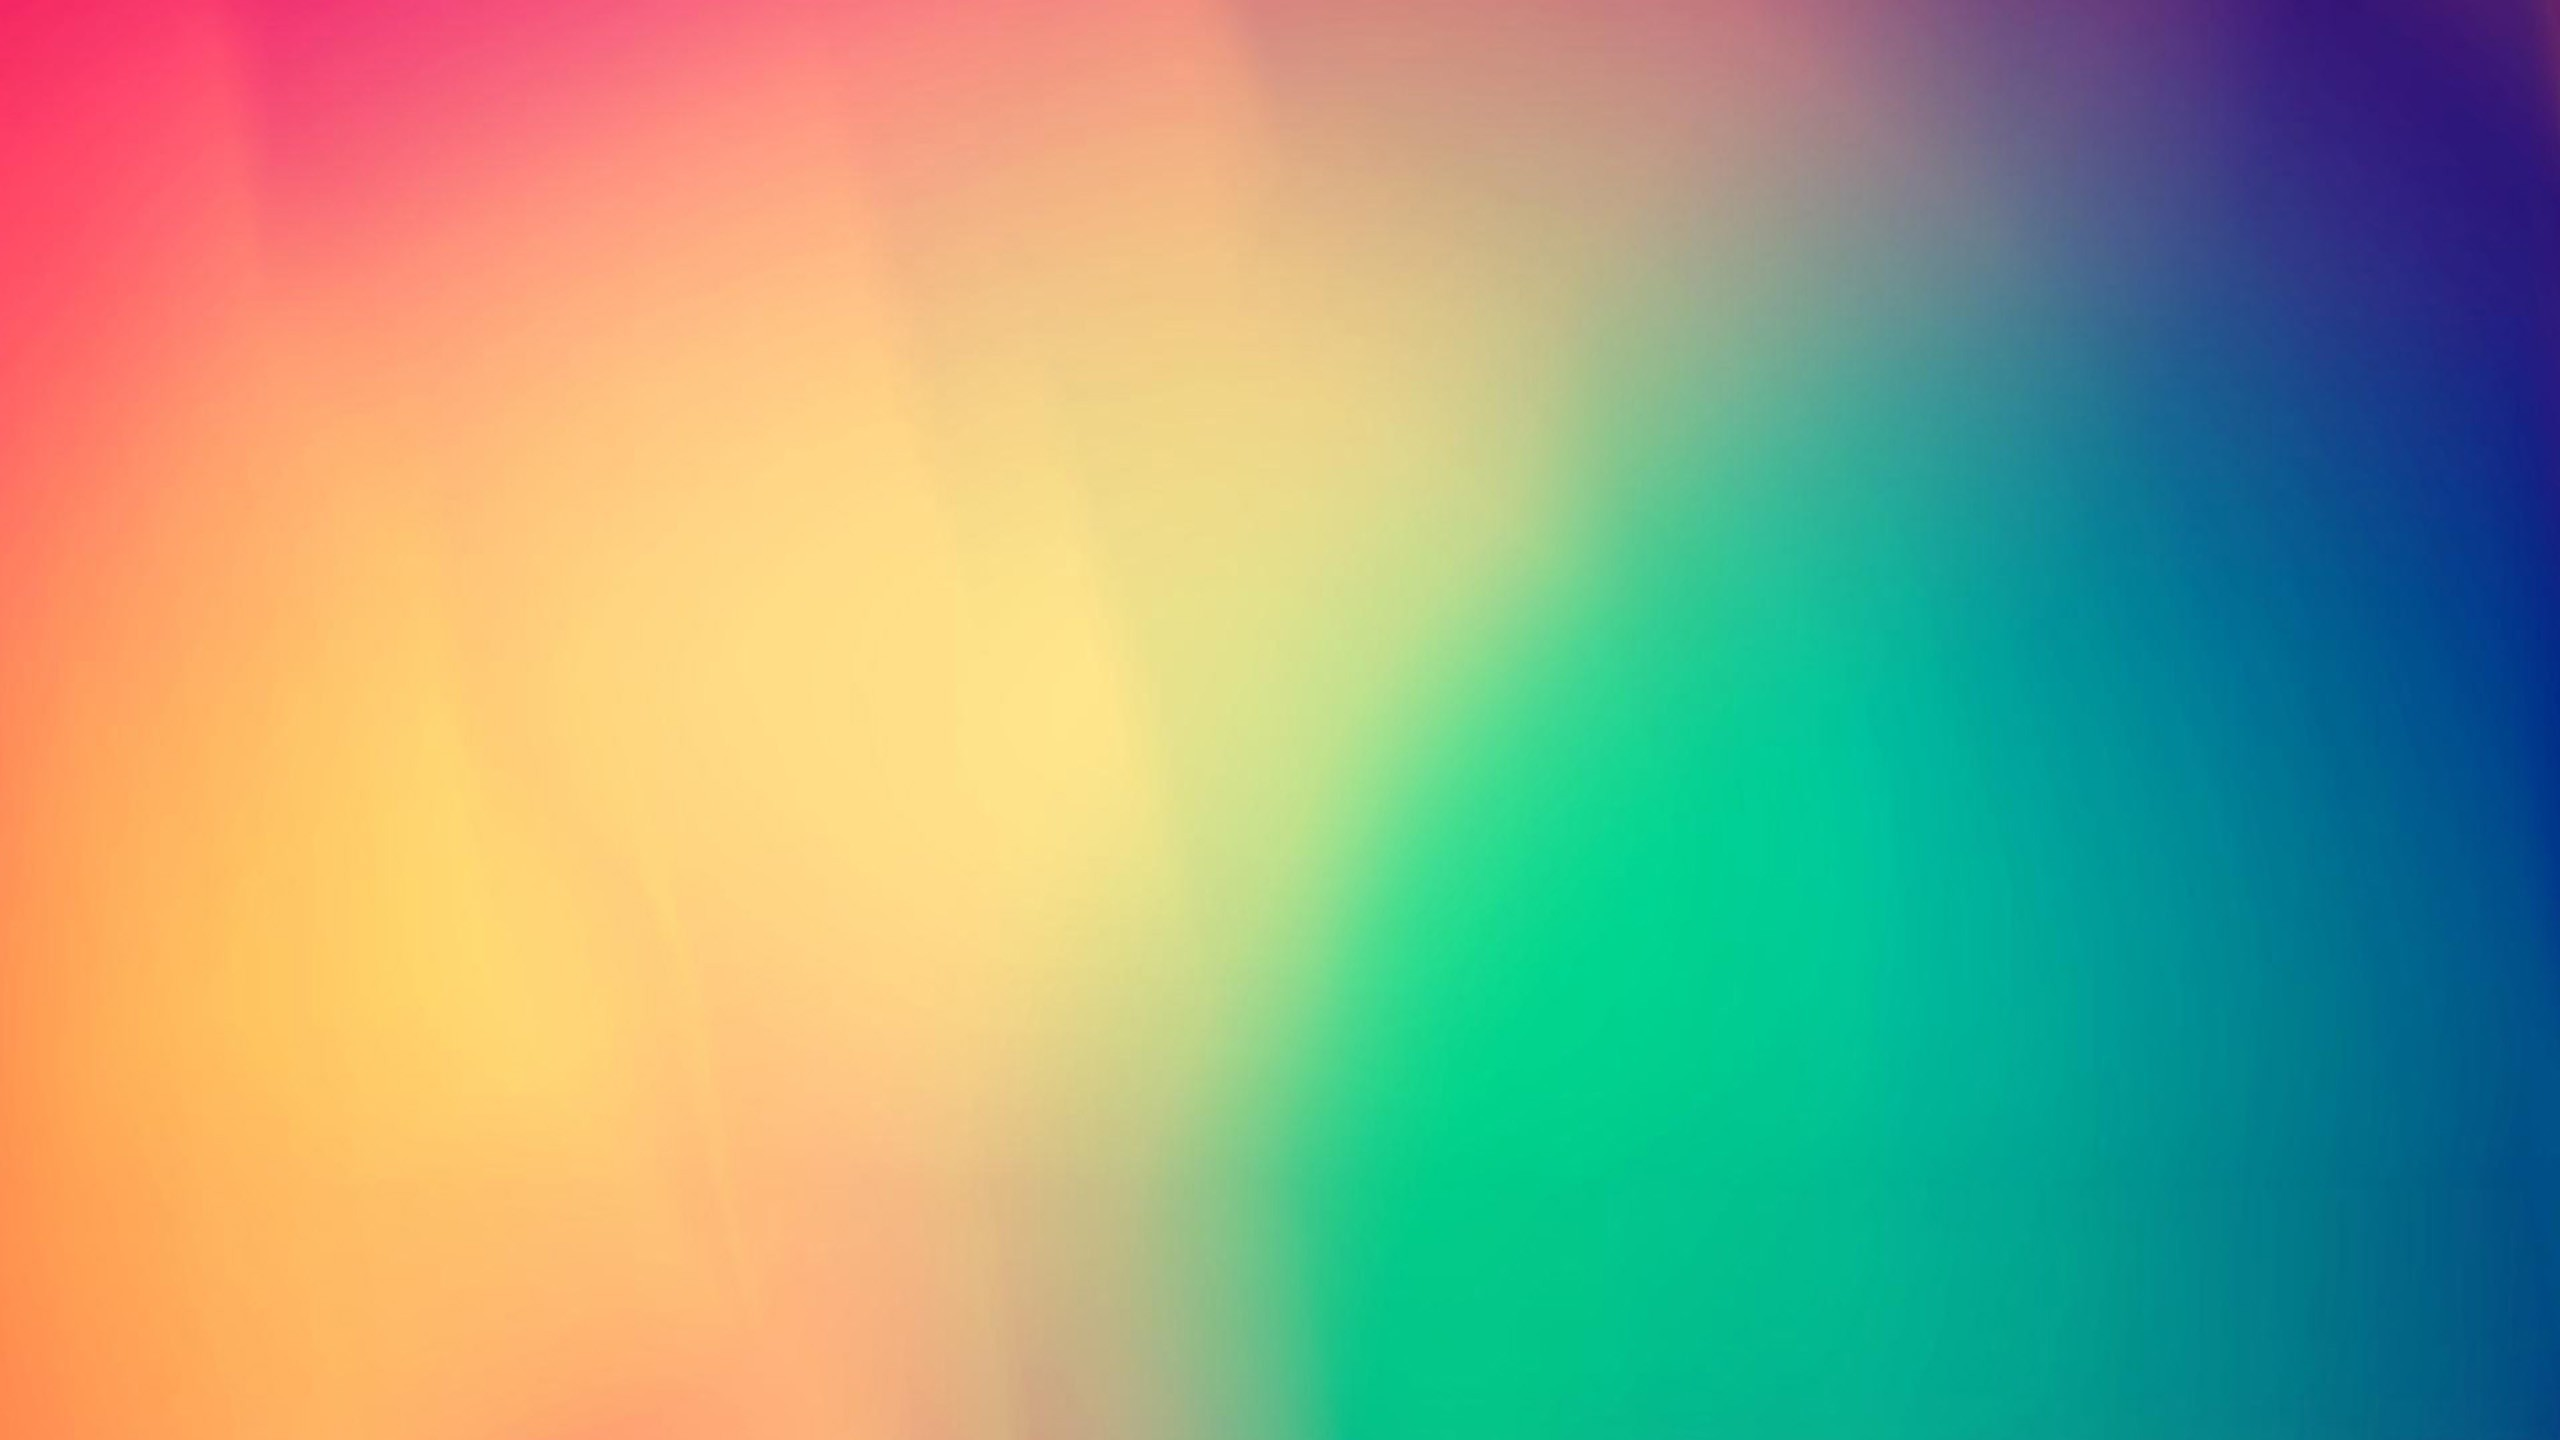 Cool Colorful Backgrounds (58+ Images